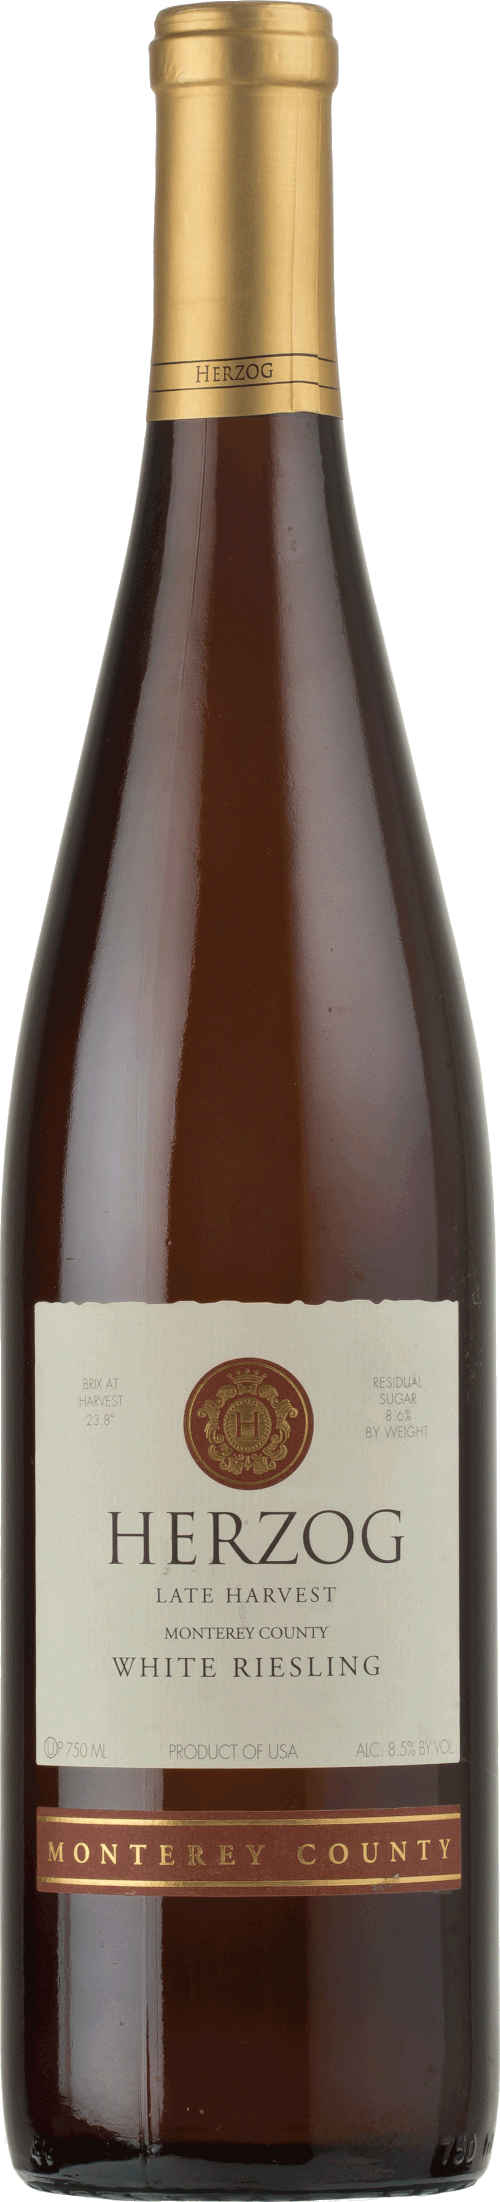 Herzog Late Harvest White Riesling